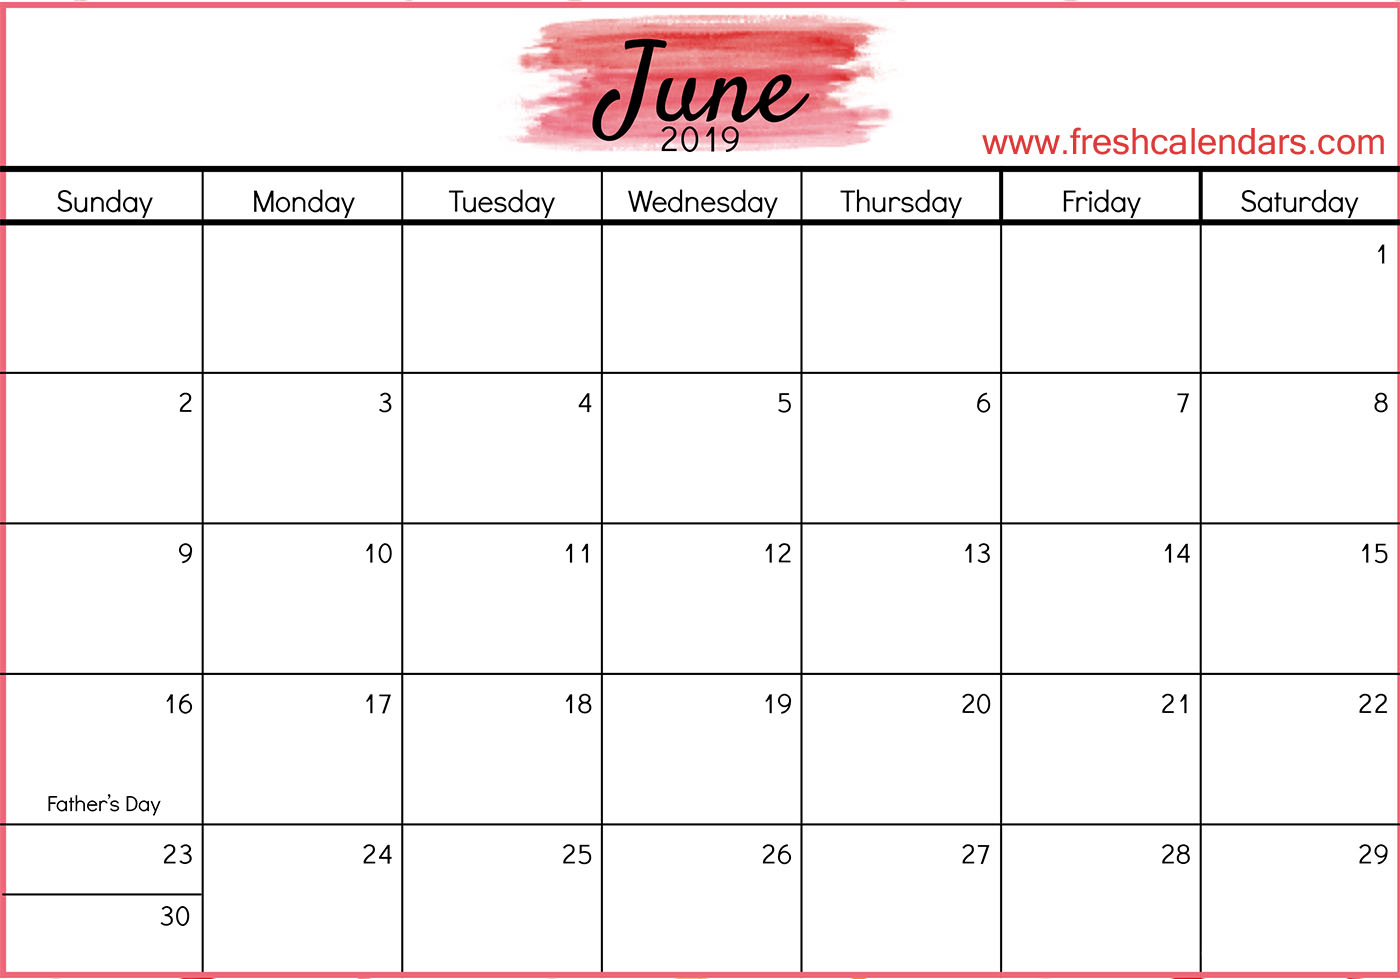 June 2019 Calendar Template Word